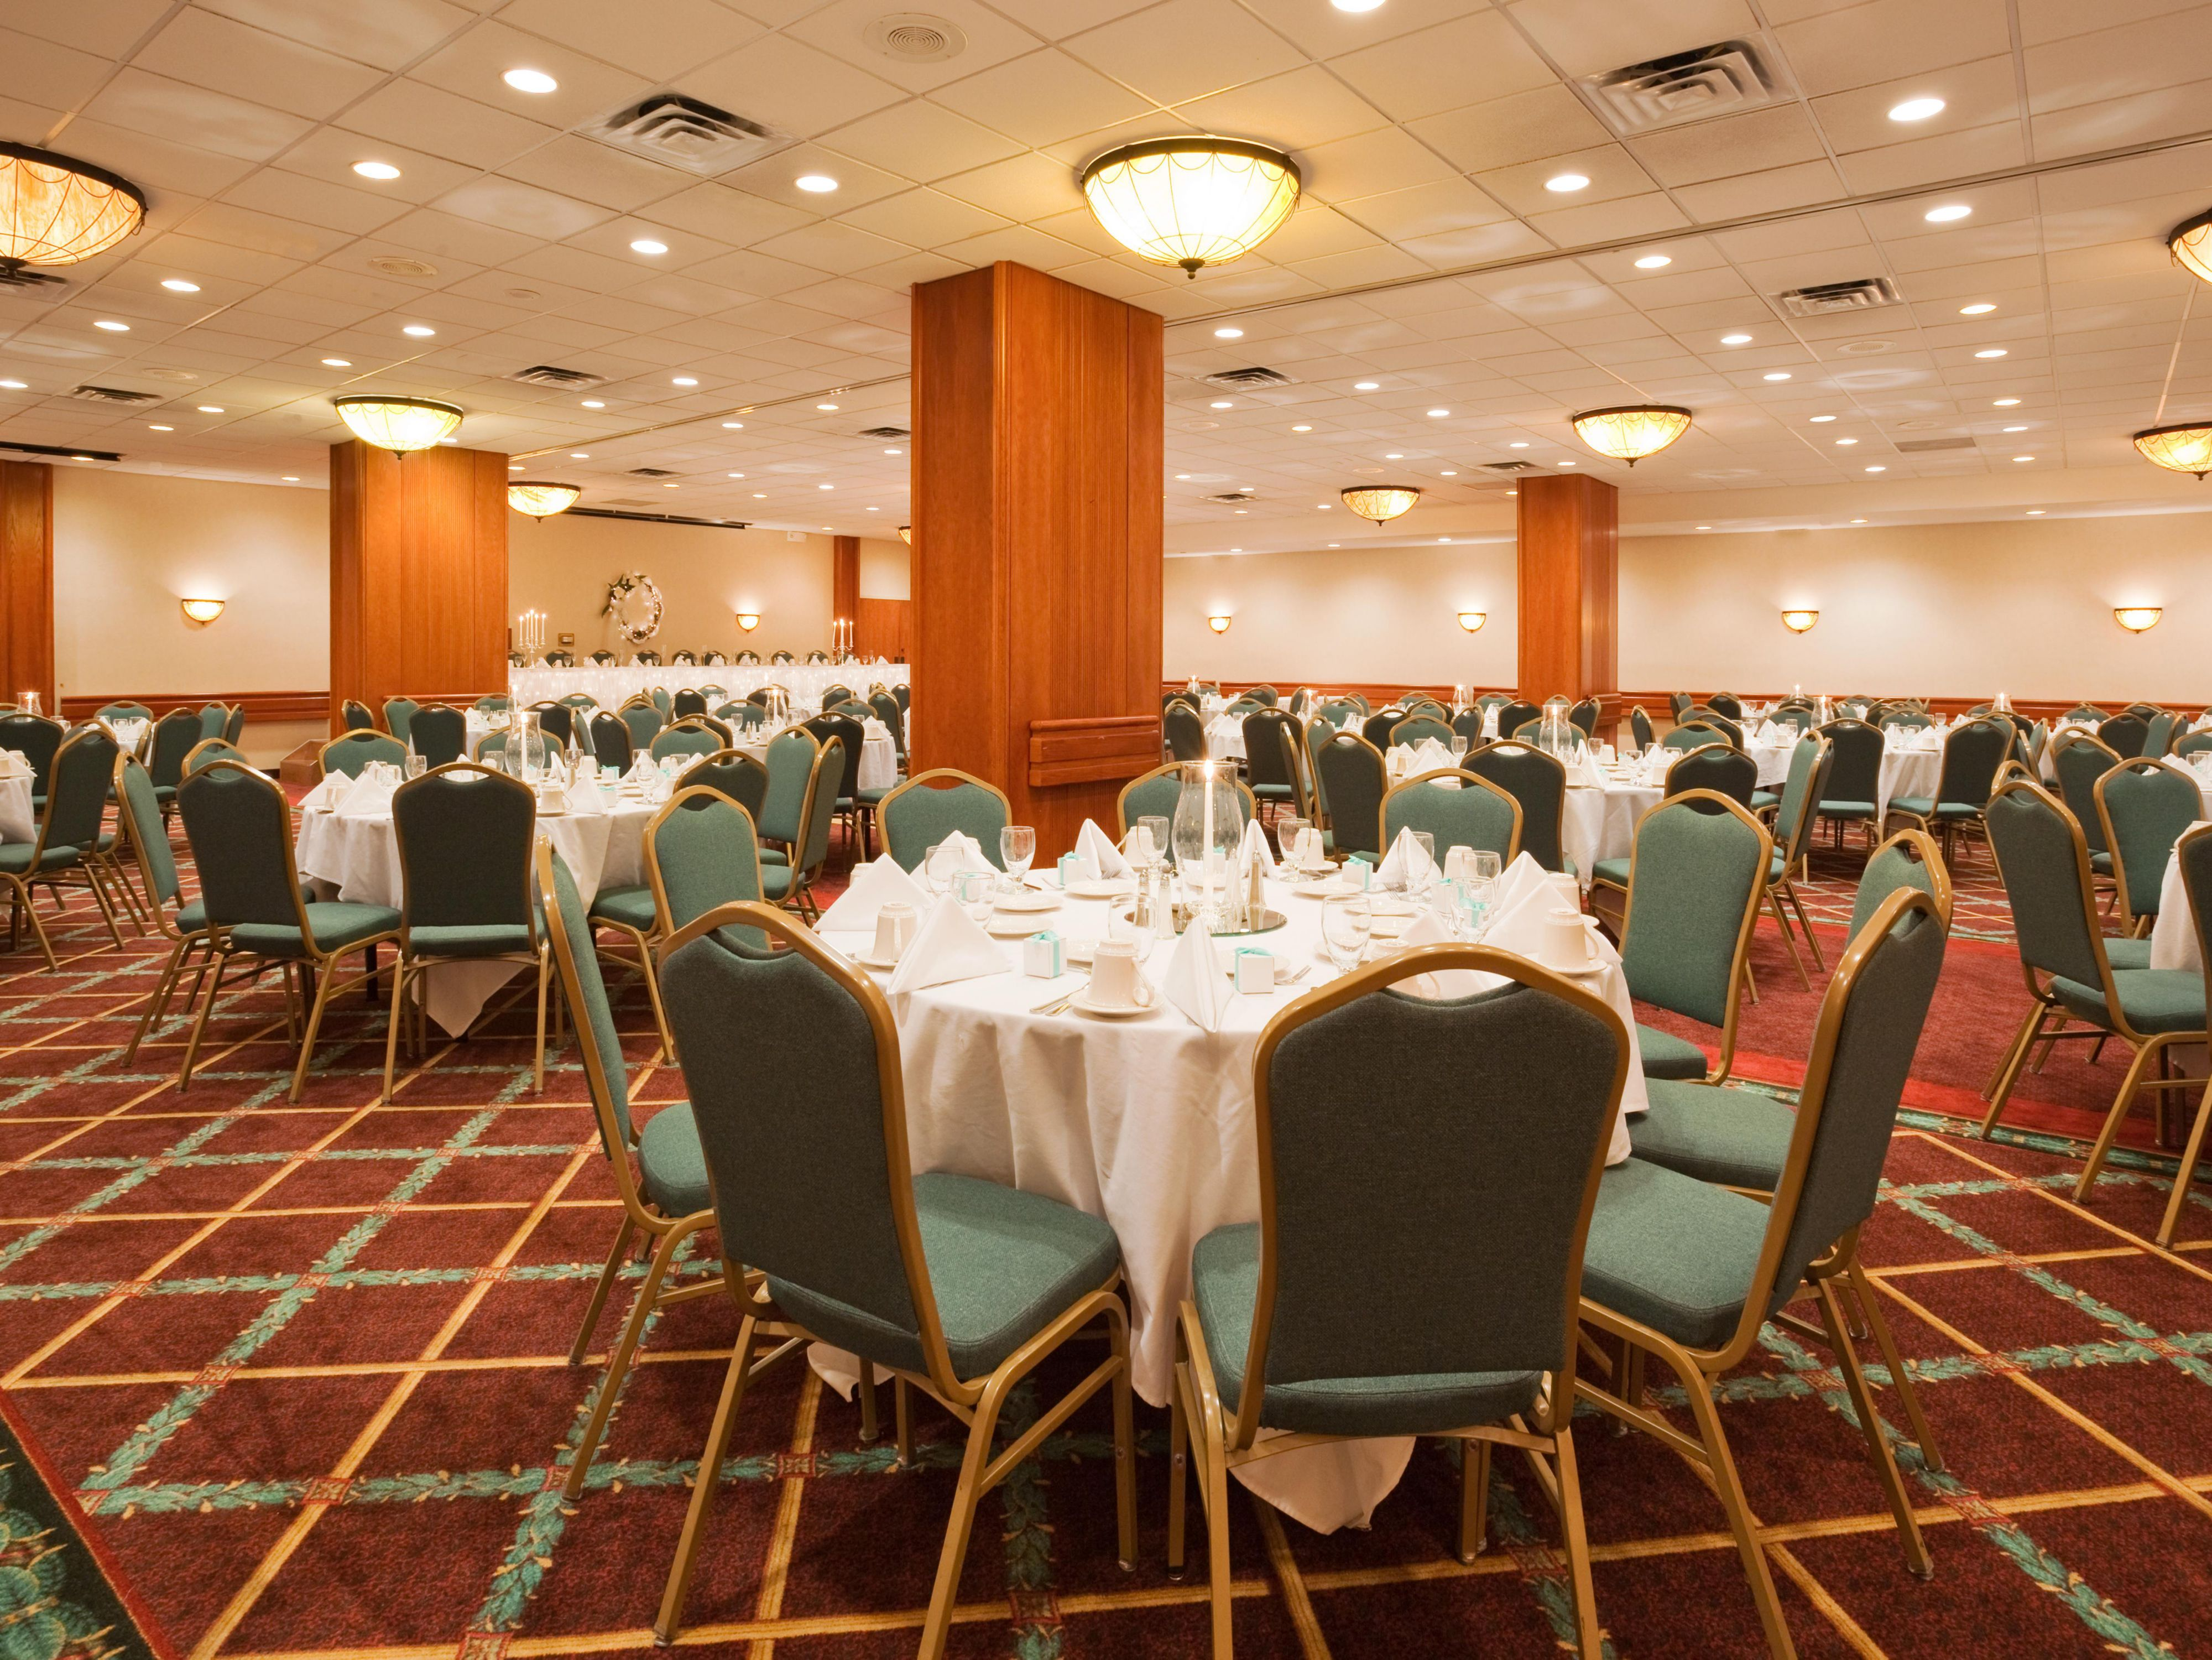 Plan the perfect reception at Holiday Inn Appleton